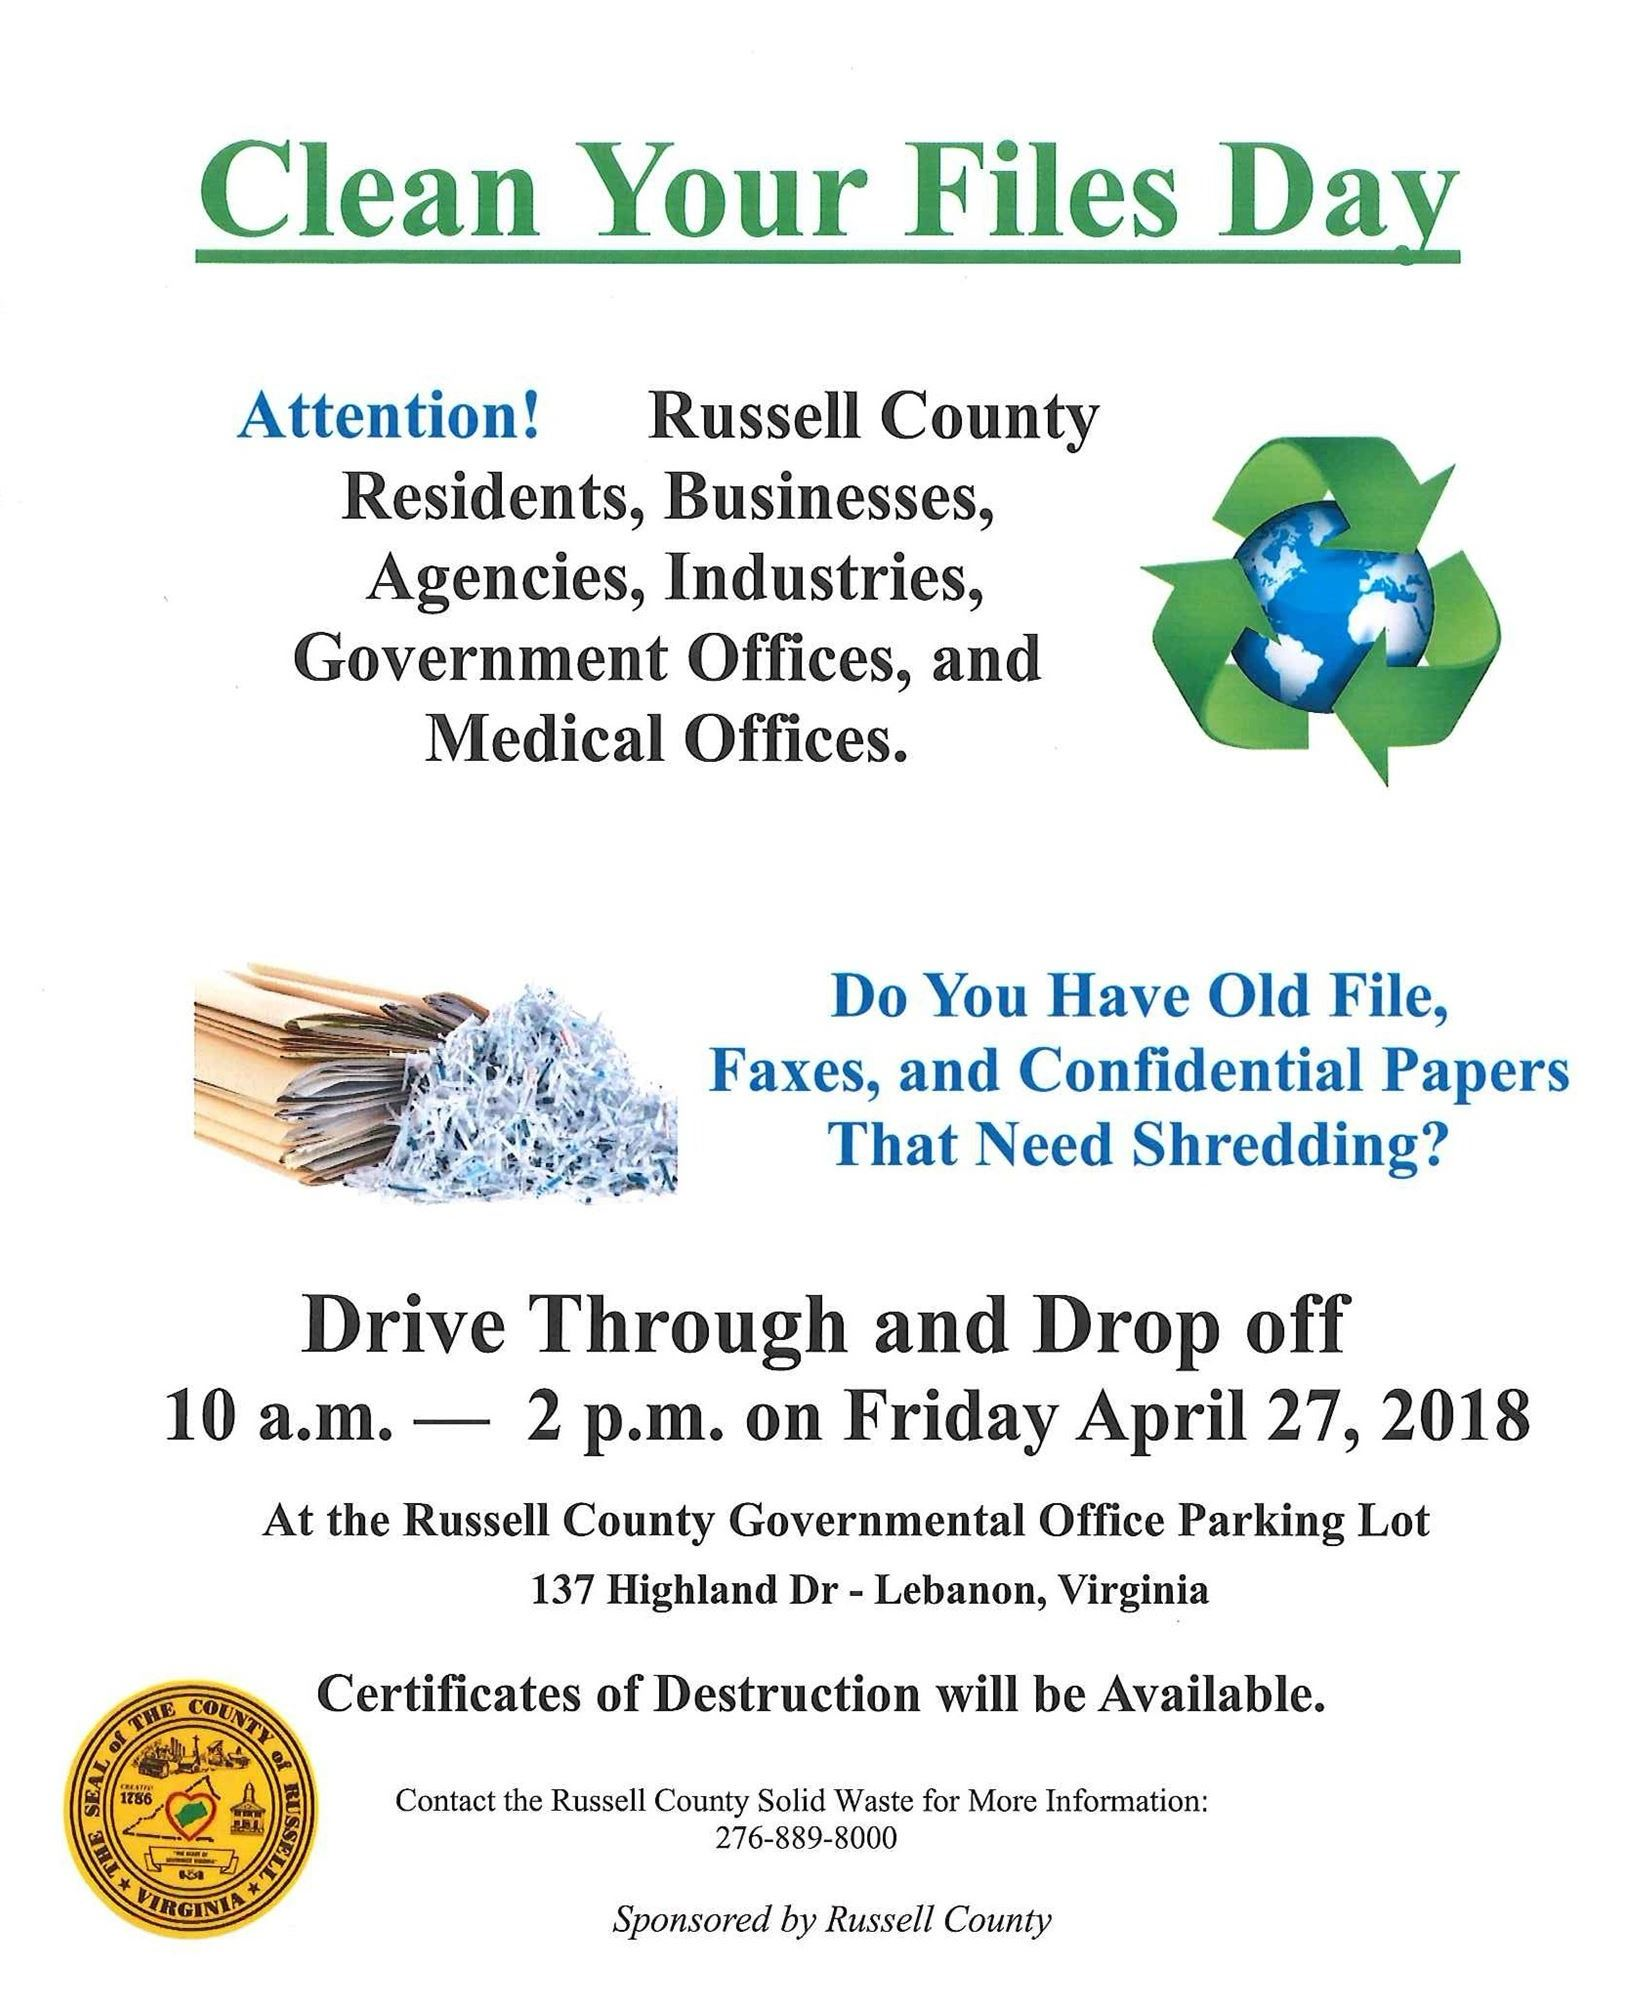 Clean Your Files Day 2018